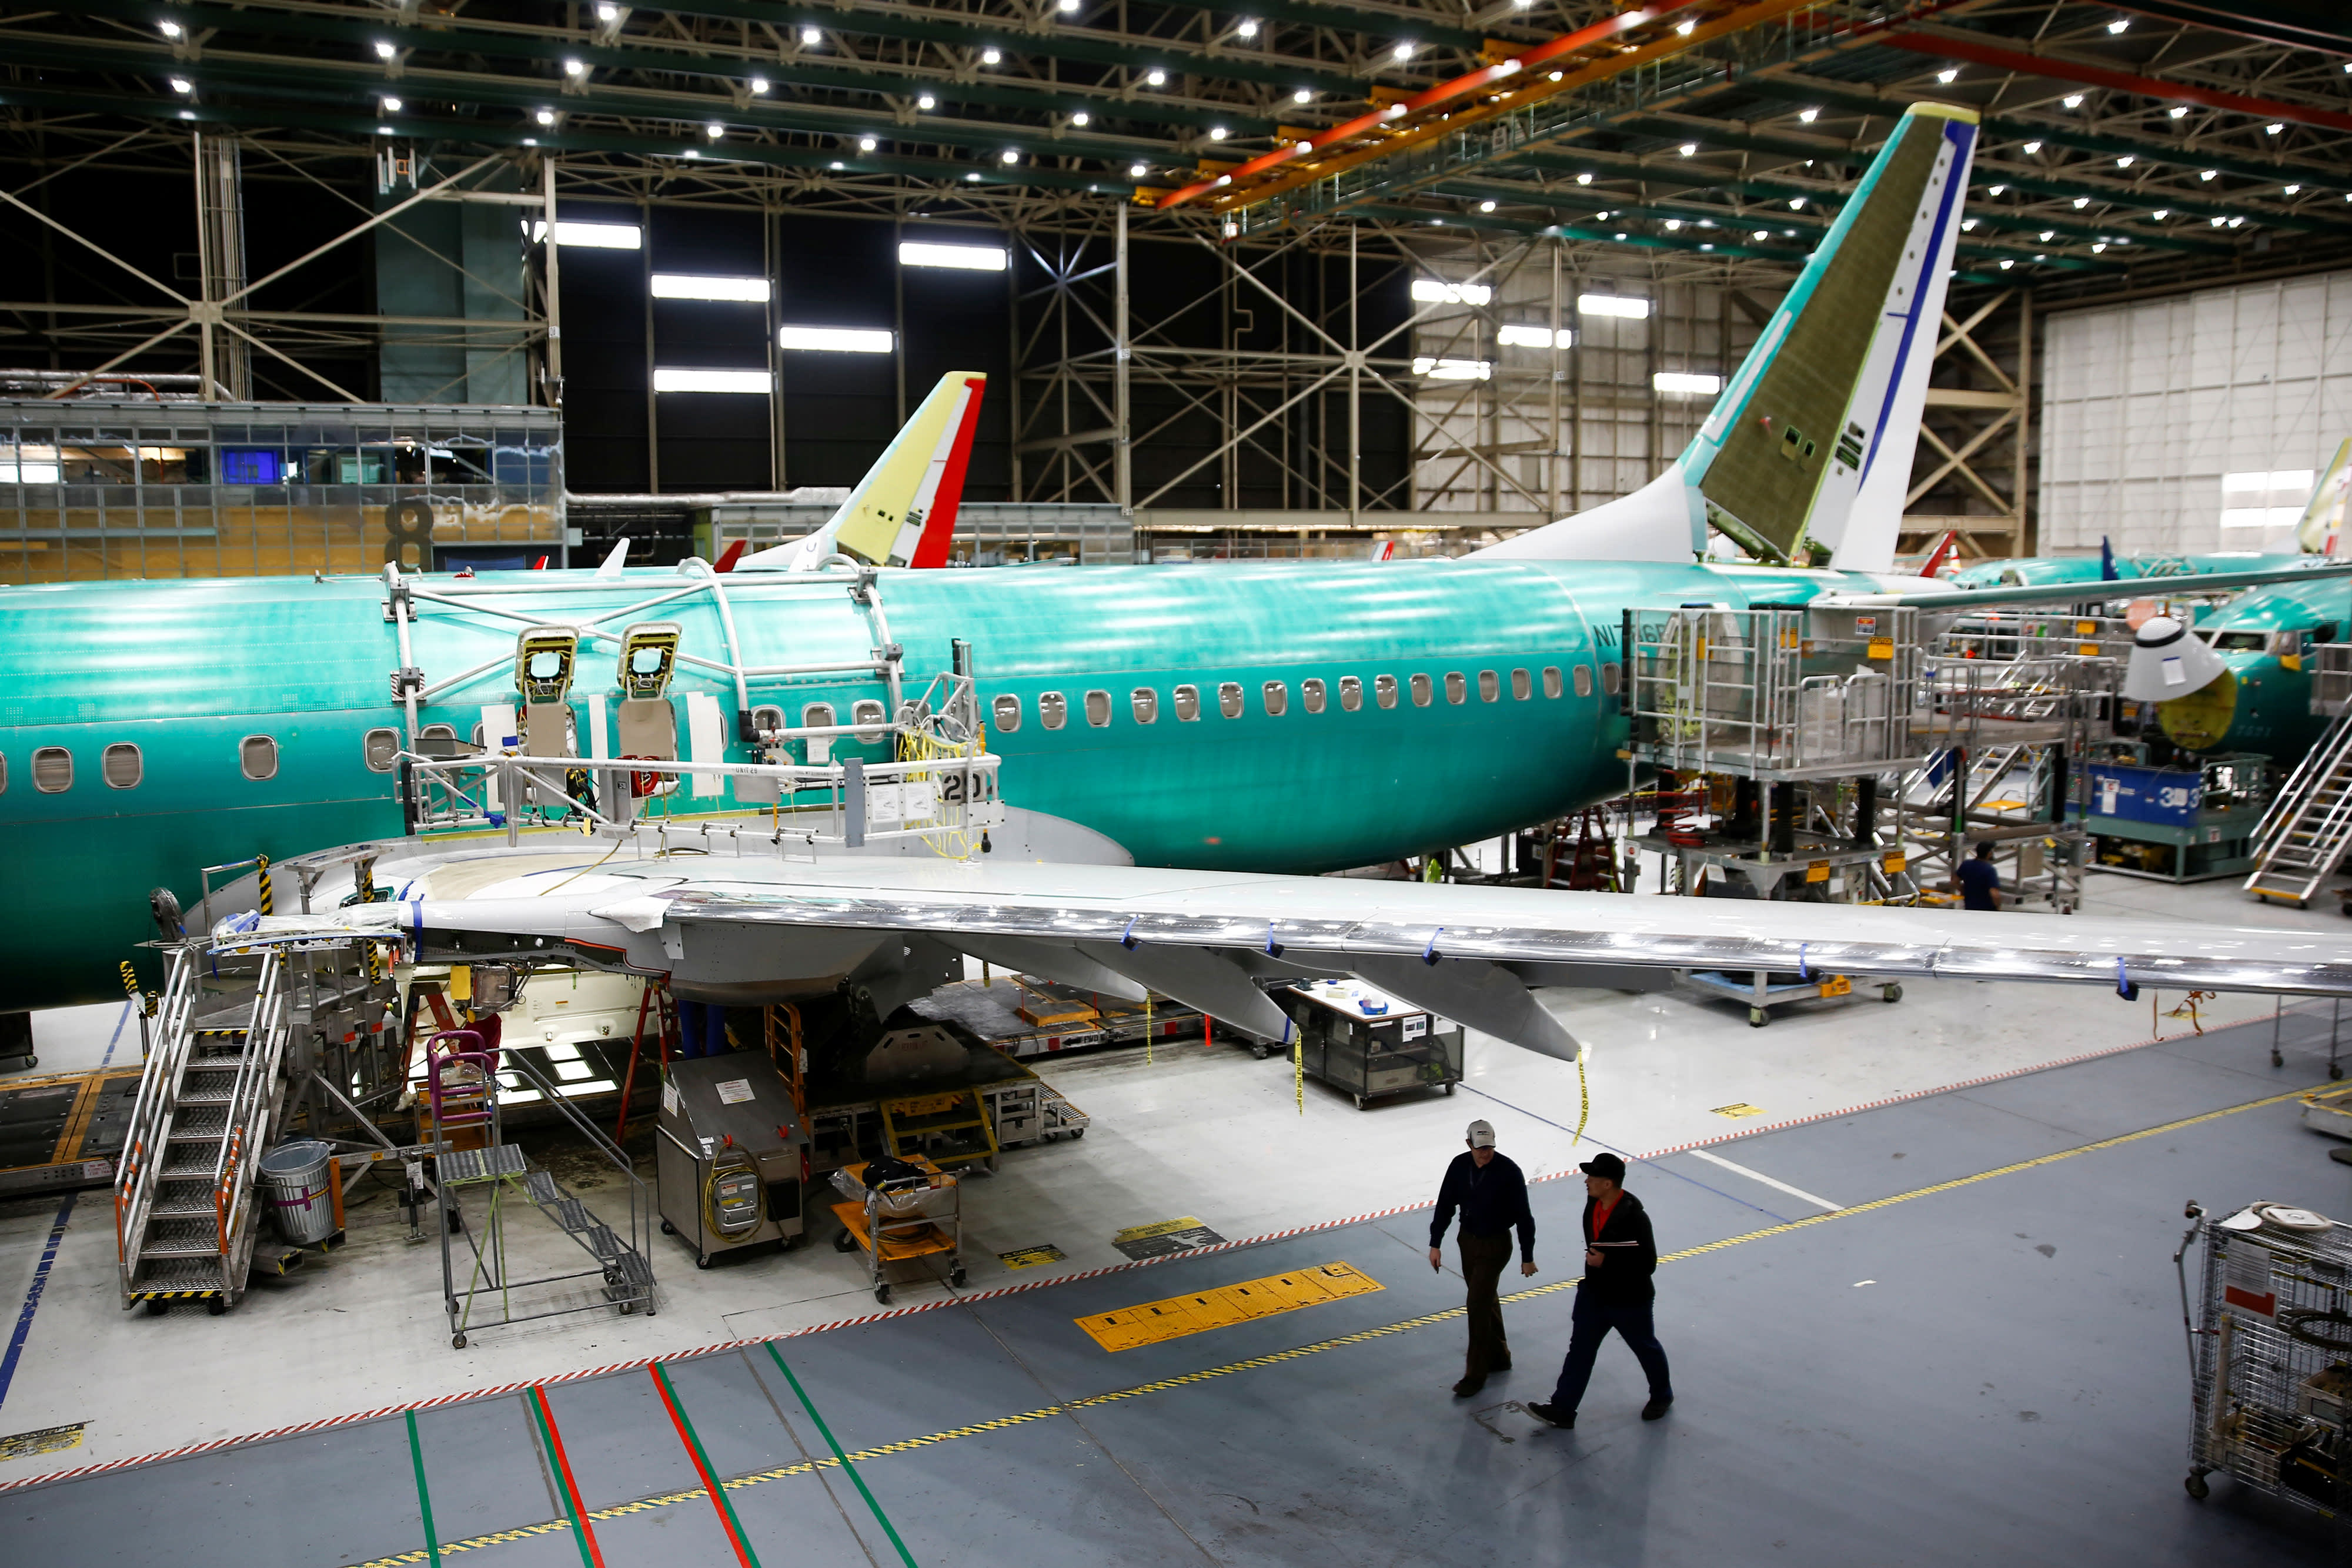 Ethiopian crash: Boeing 737 Max anti-stall system likely